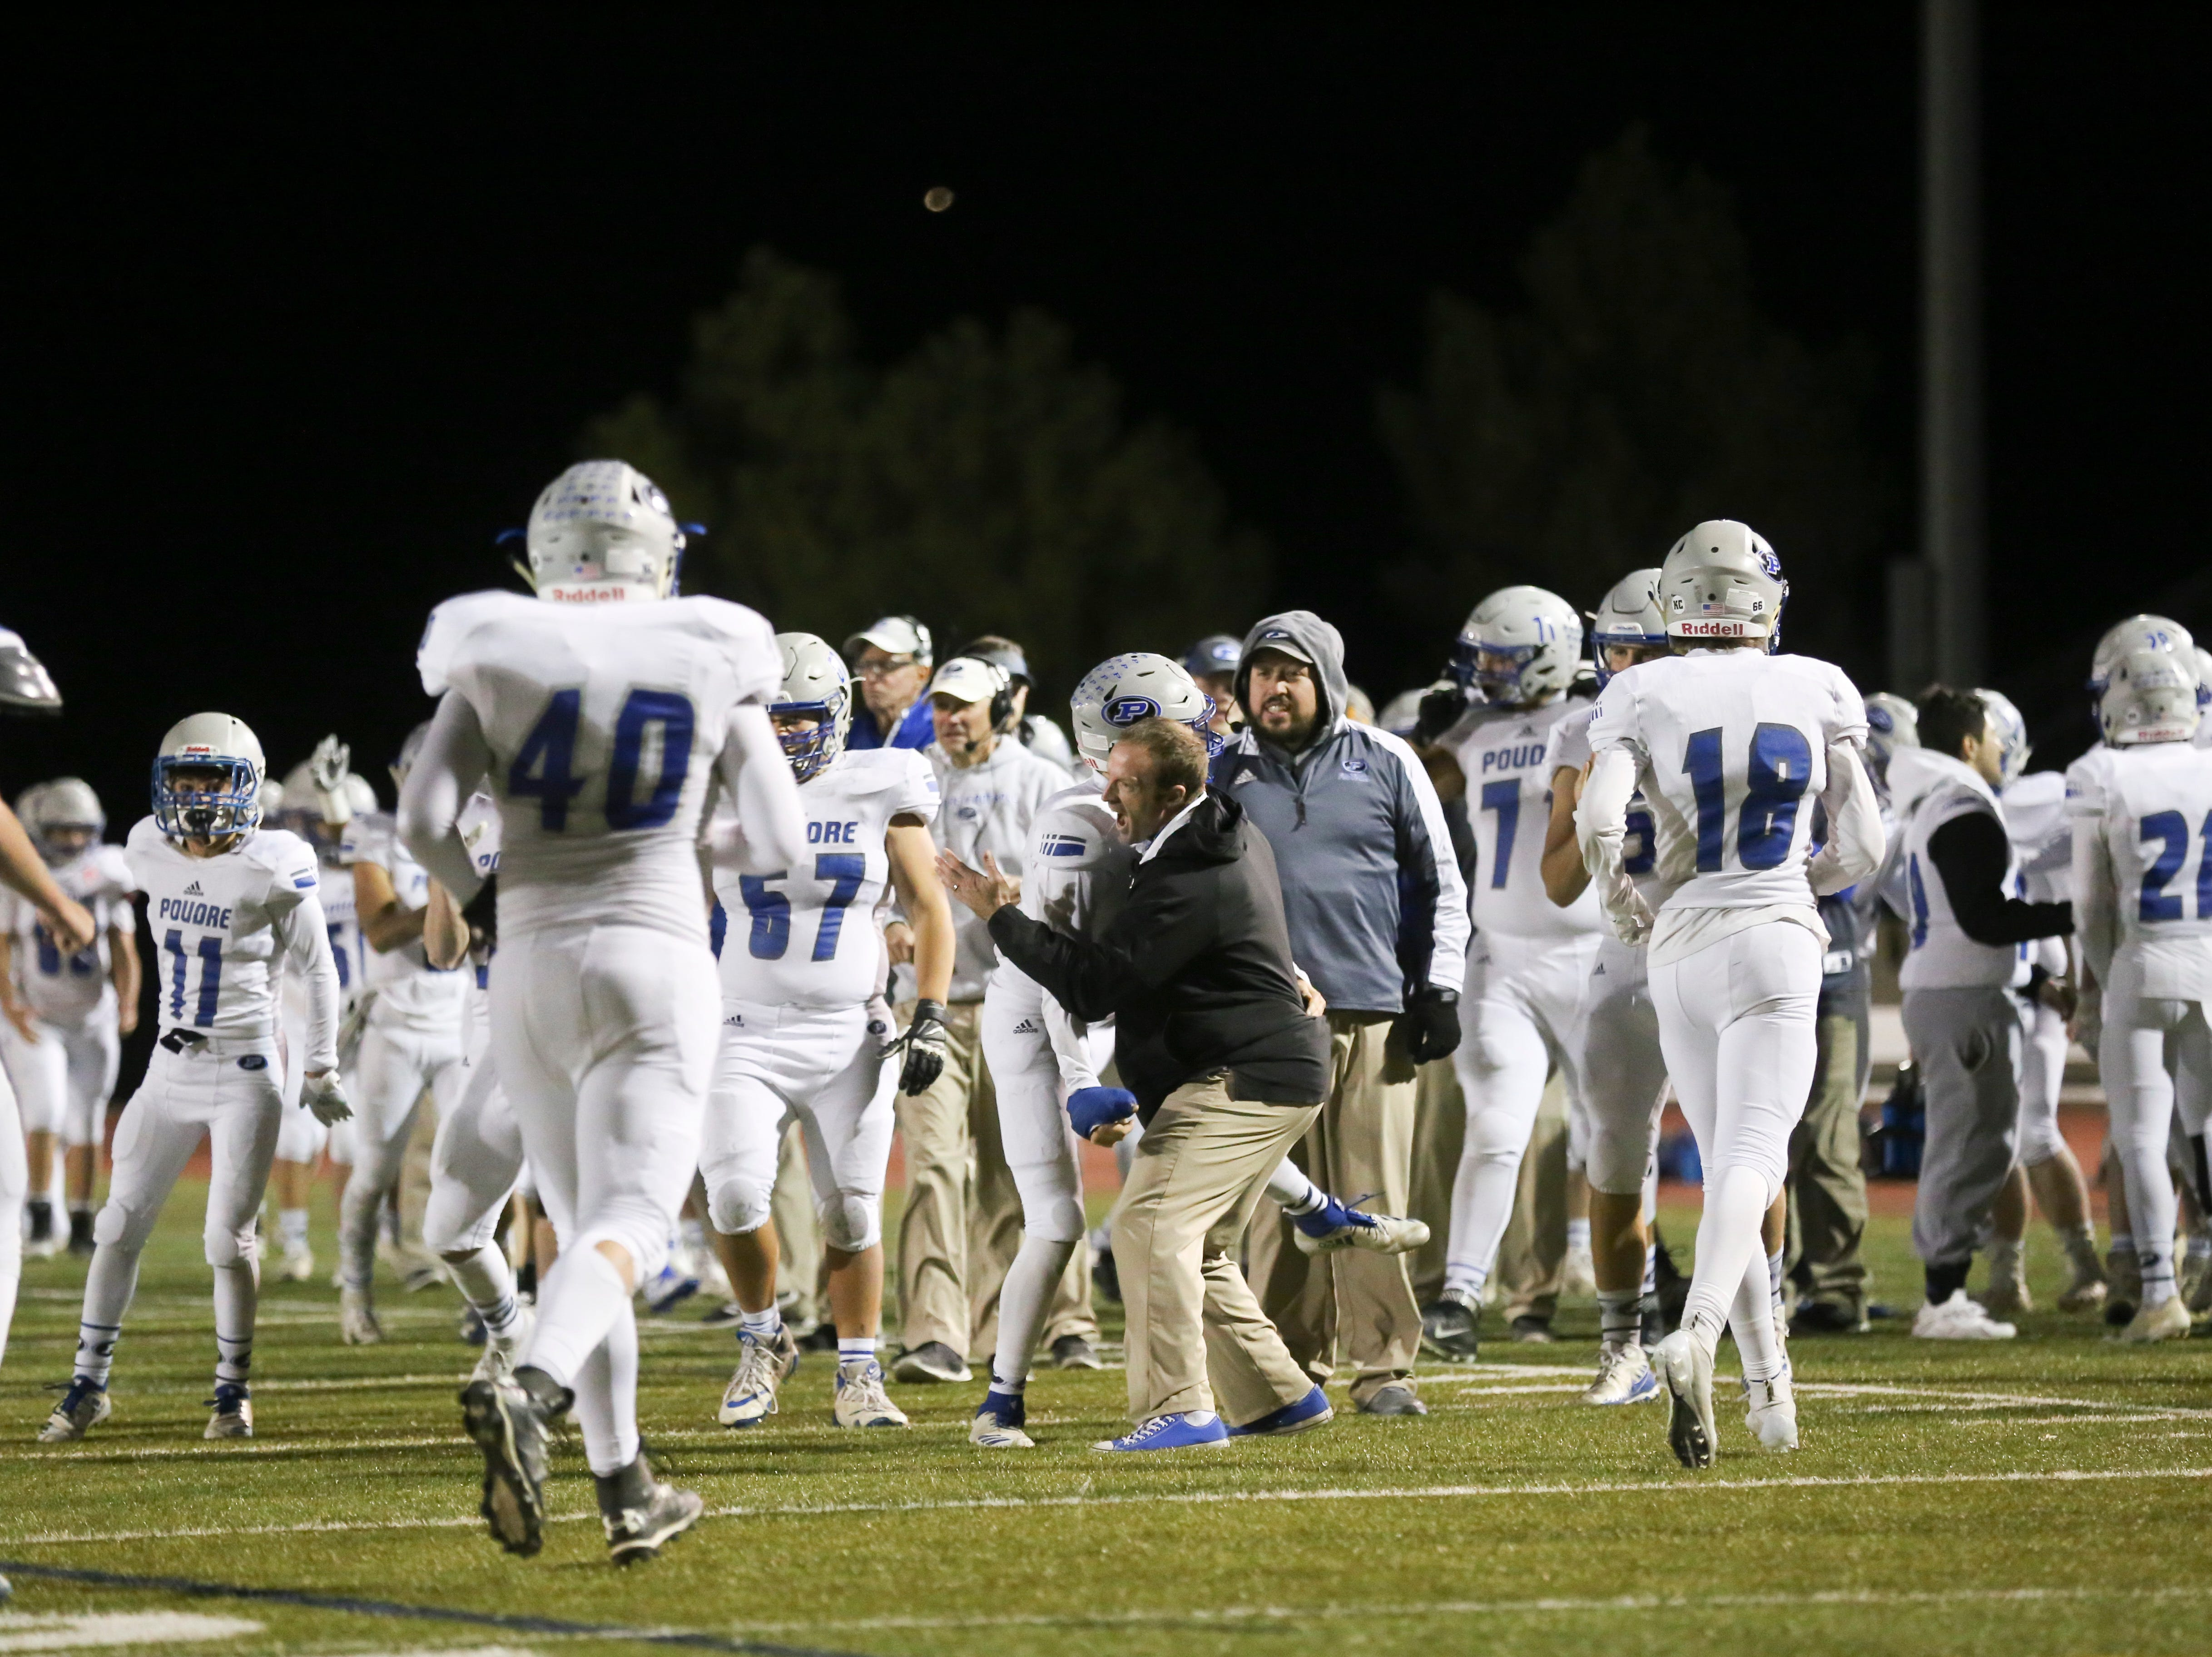 Members of the Poudre High School bench celebrate a goal line stop against Cherokee Trail High School on Friday evening.